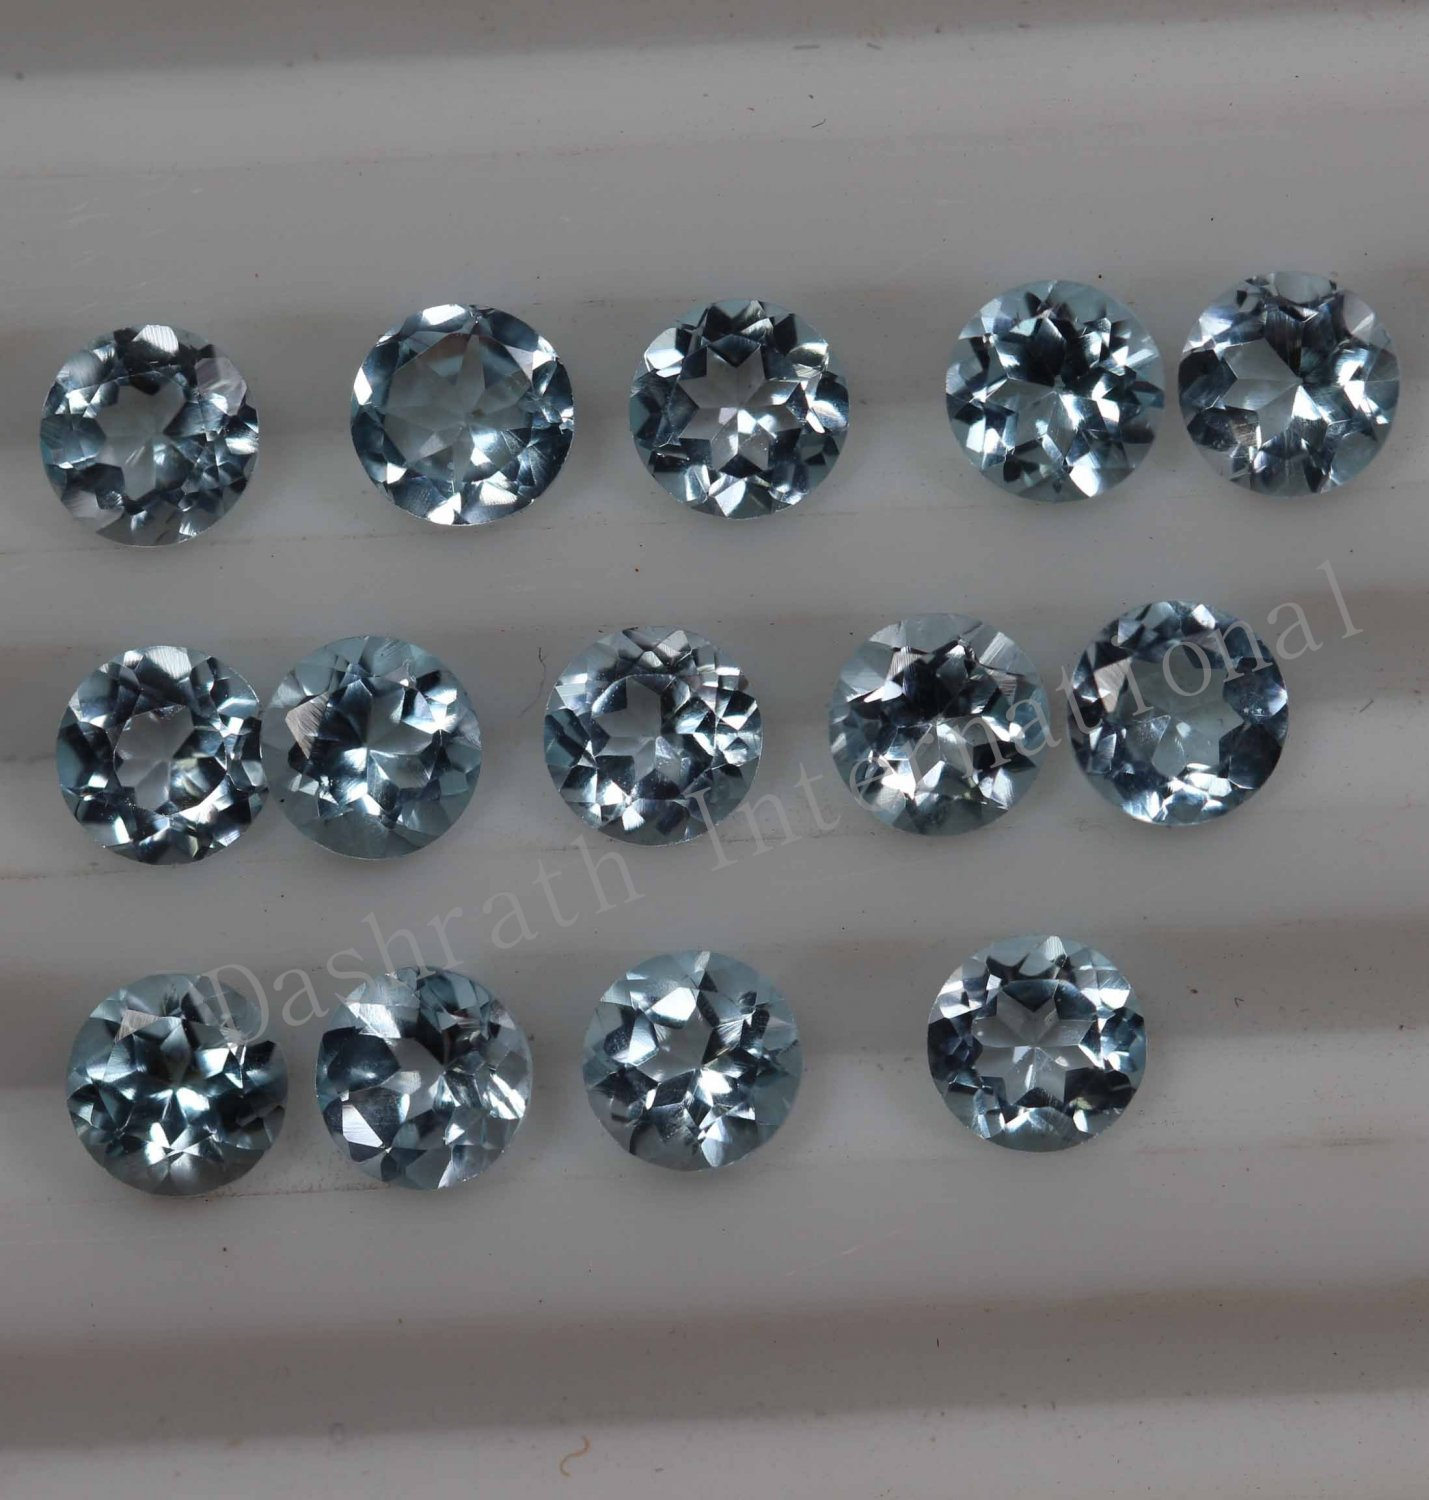 3mmNatural Sky Blue Topaz Faceted Cut Round 100 Pieces Lot Blue Color  Top Quality Loose Gemstone